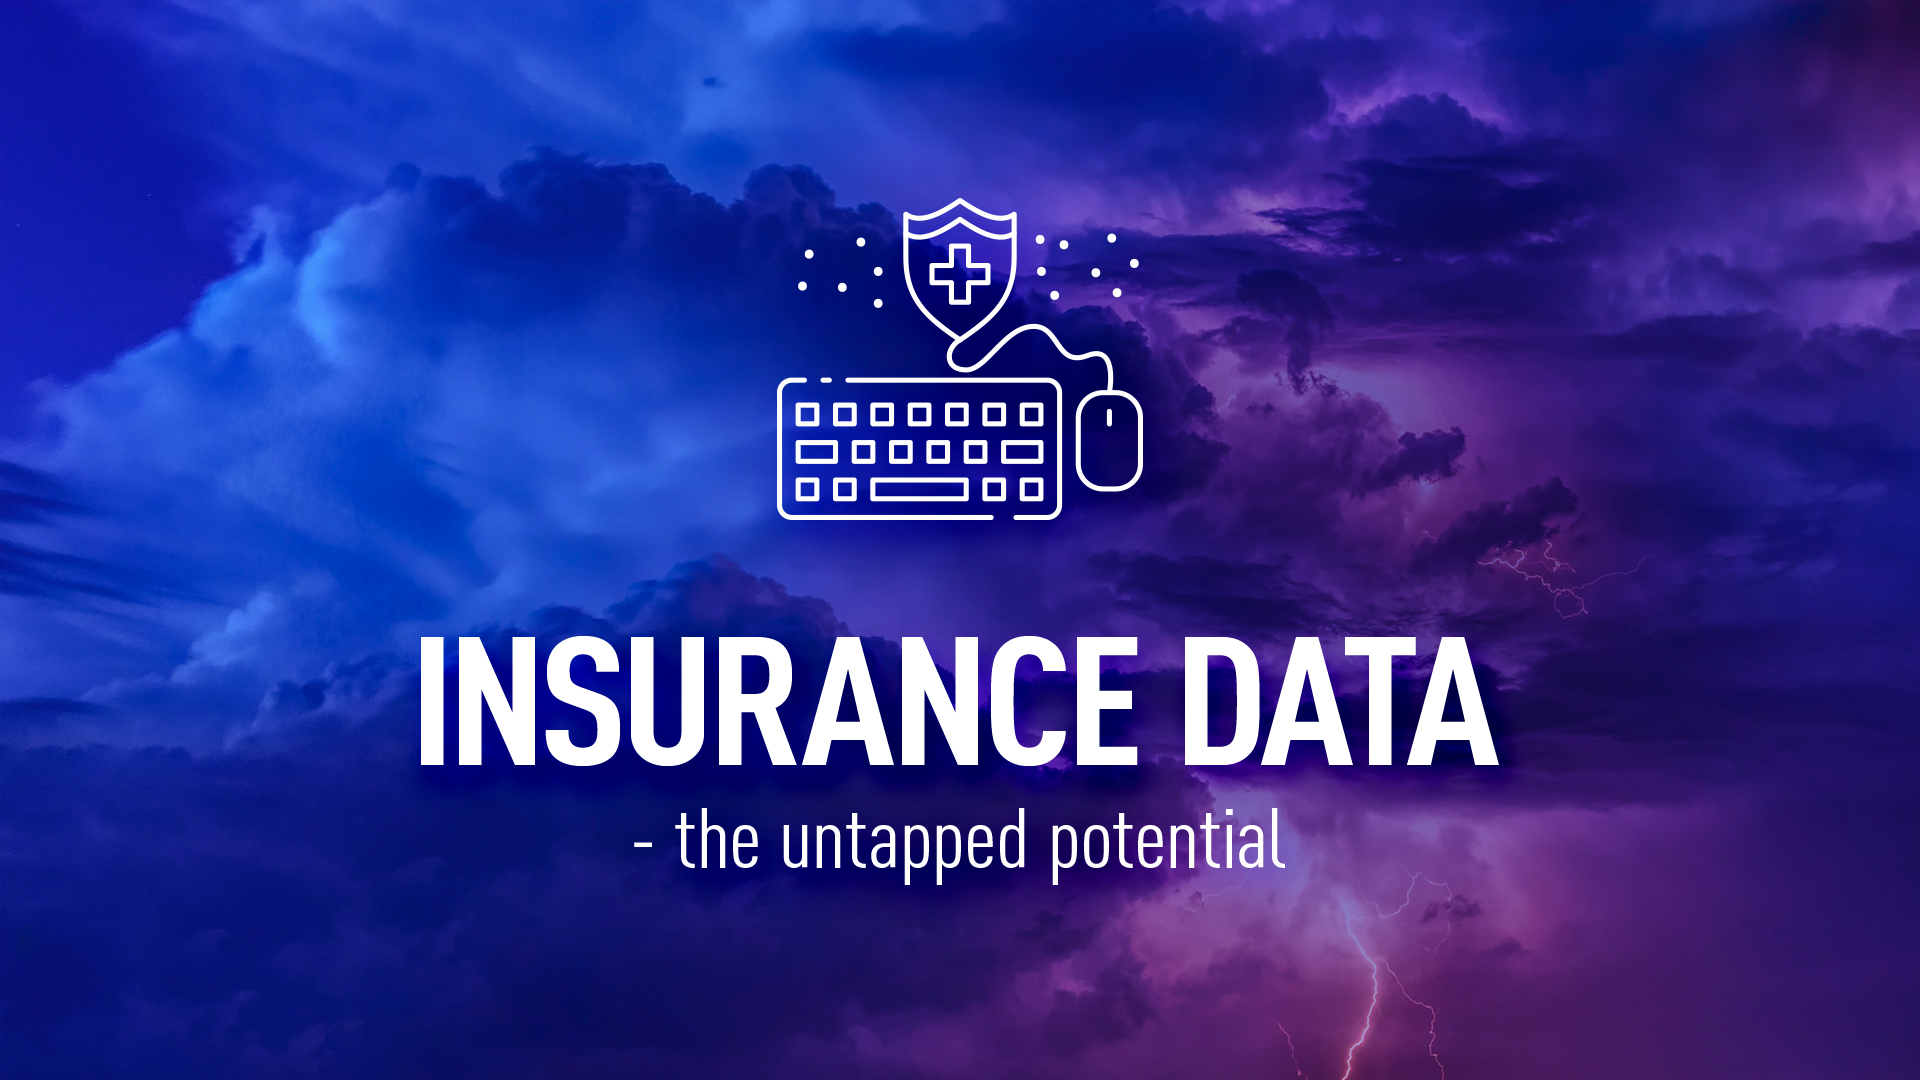 Insurance data – the untapped potential